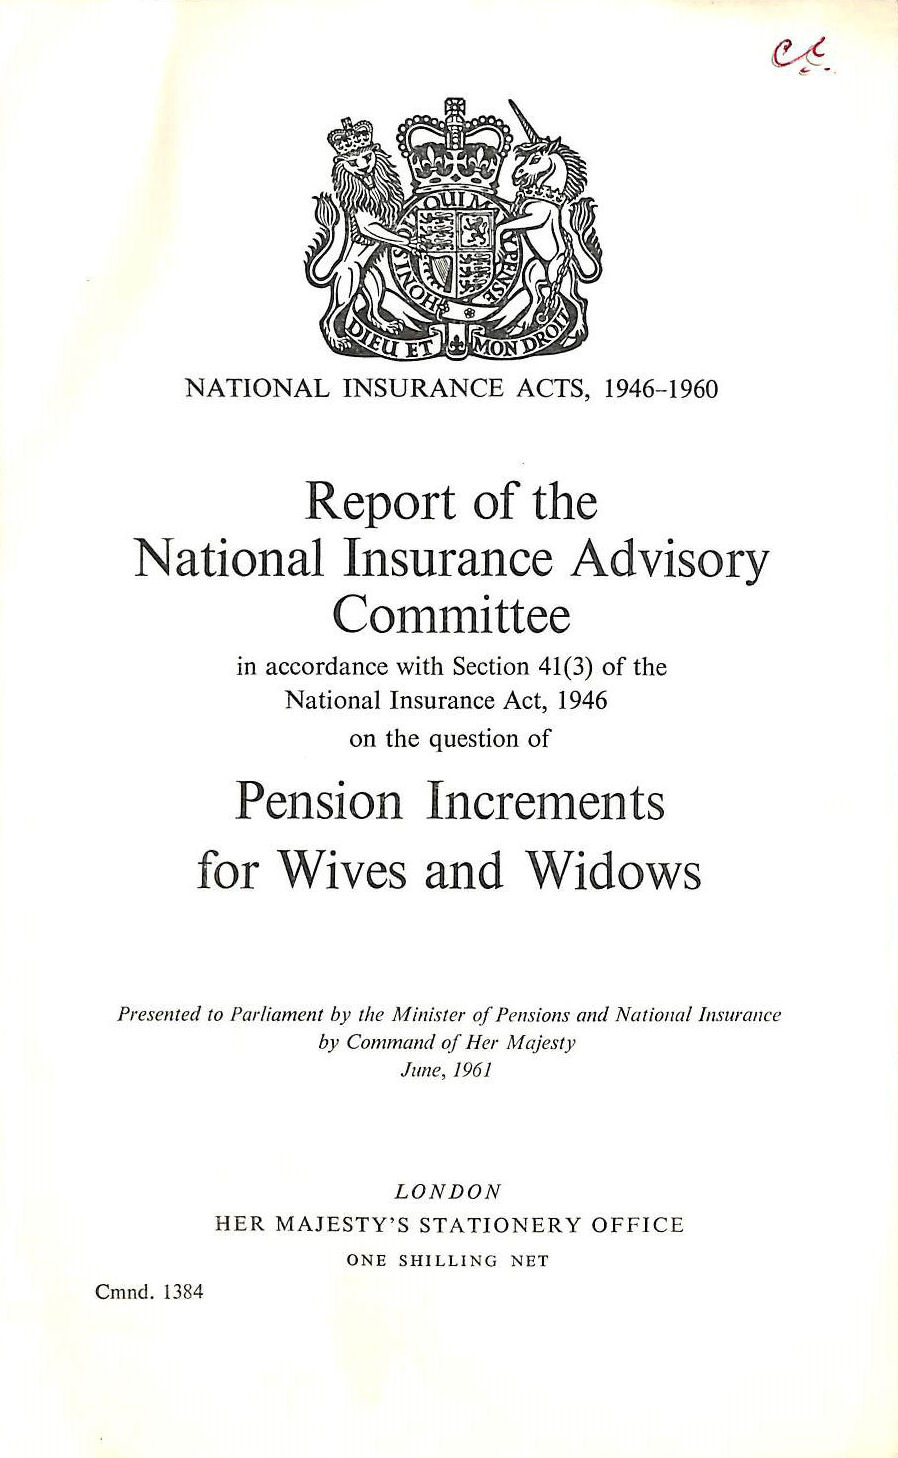 Image for Report of the National Insurance Advisory Committee, Pension Increments for Wives and Widows Cmnd. 1384